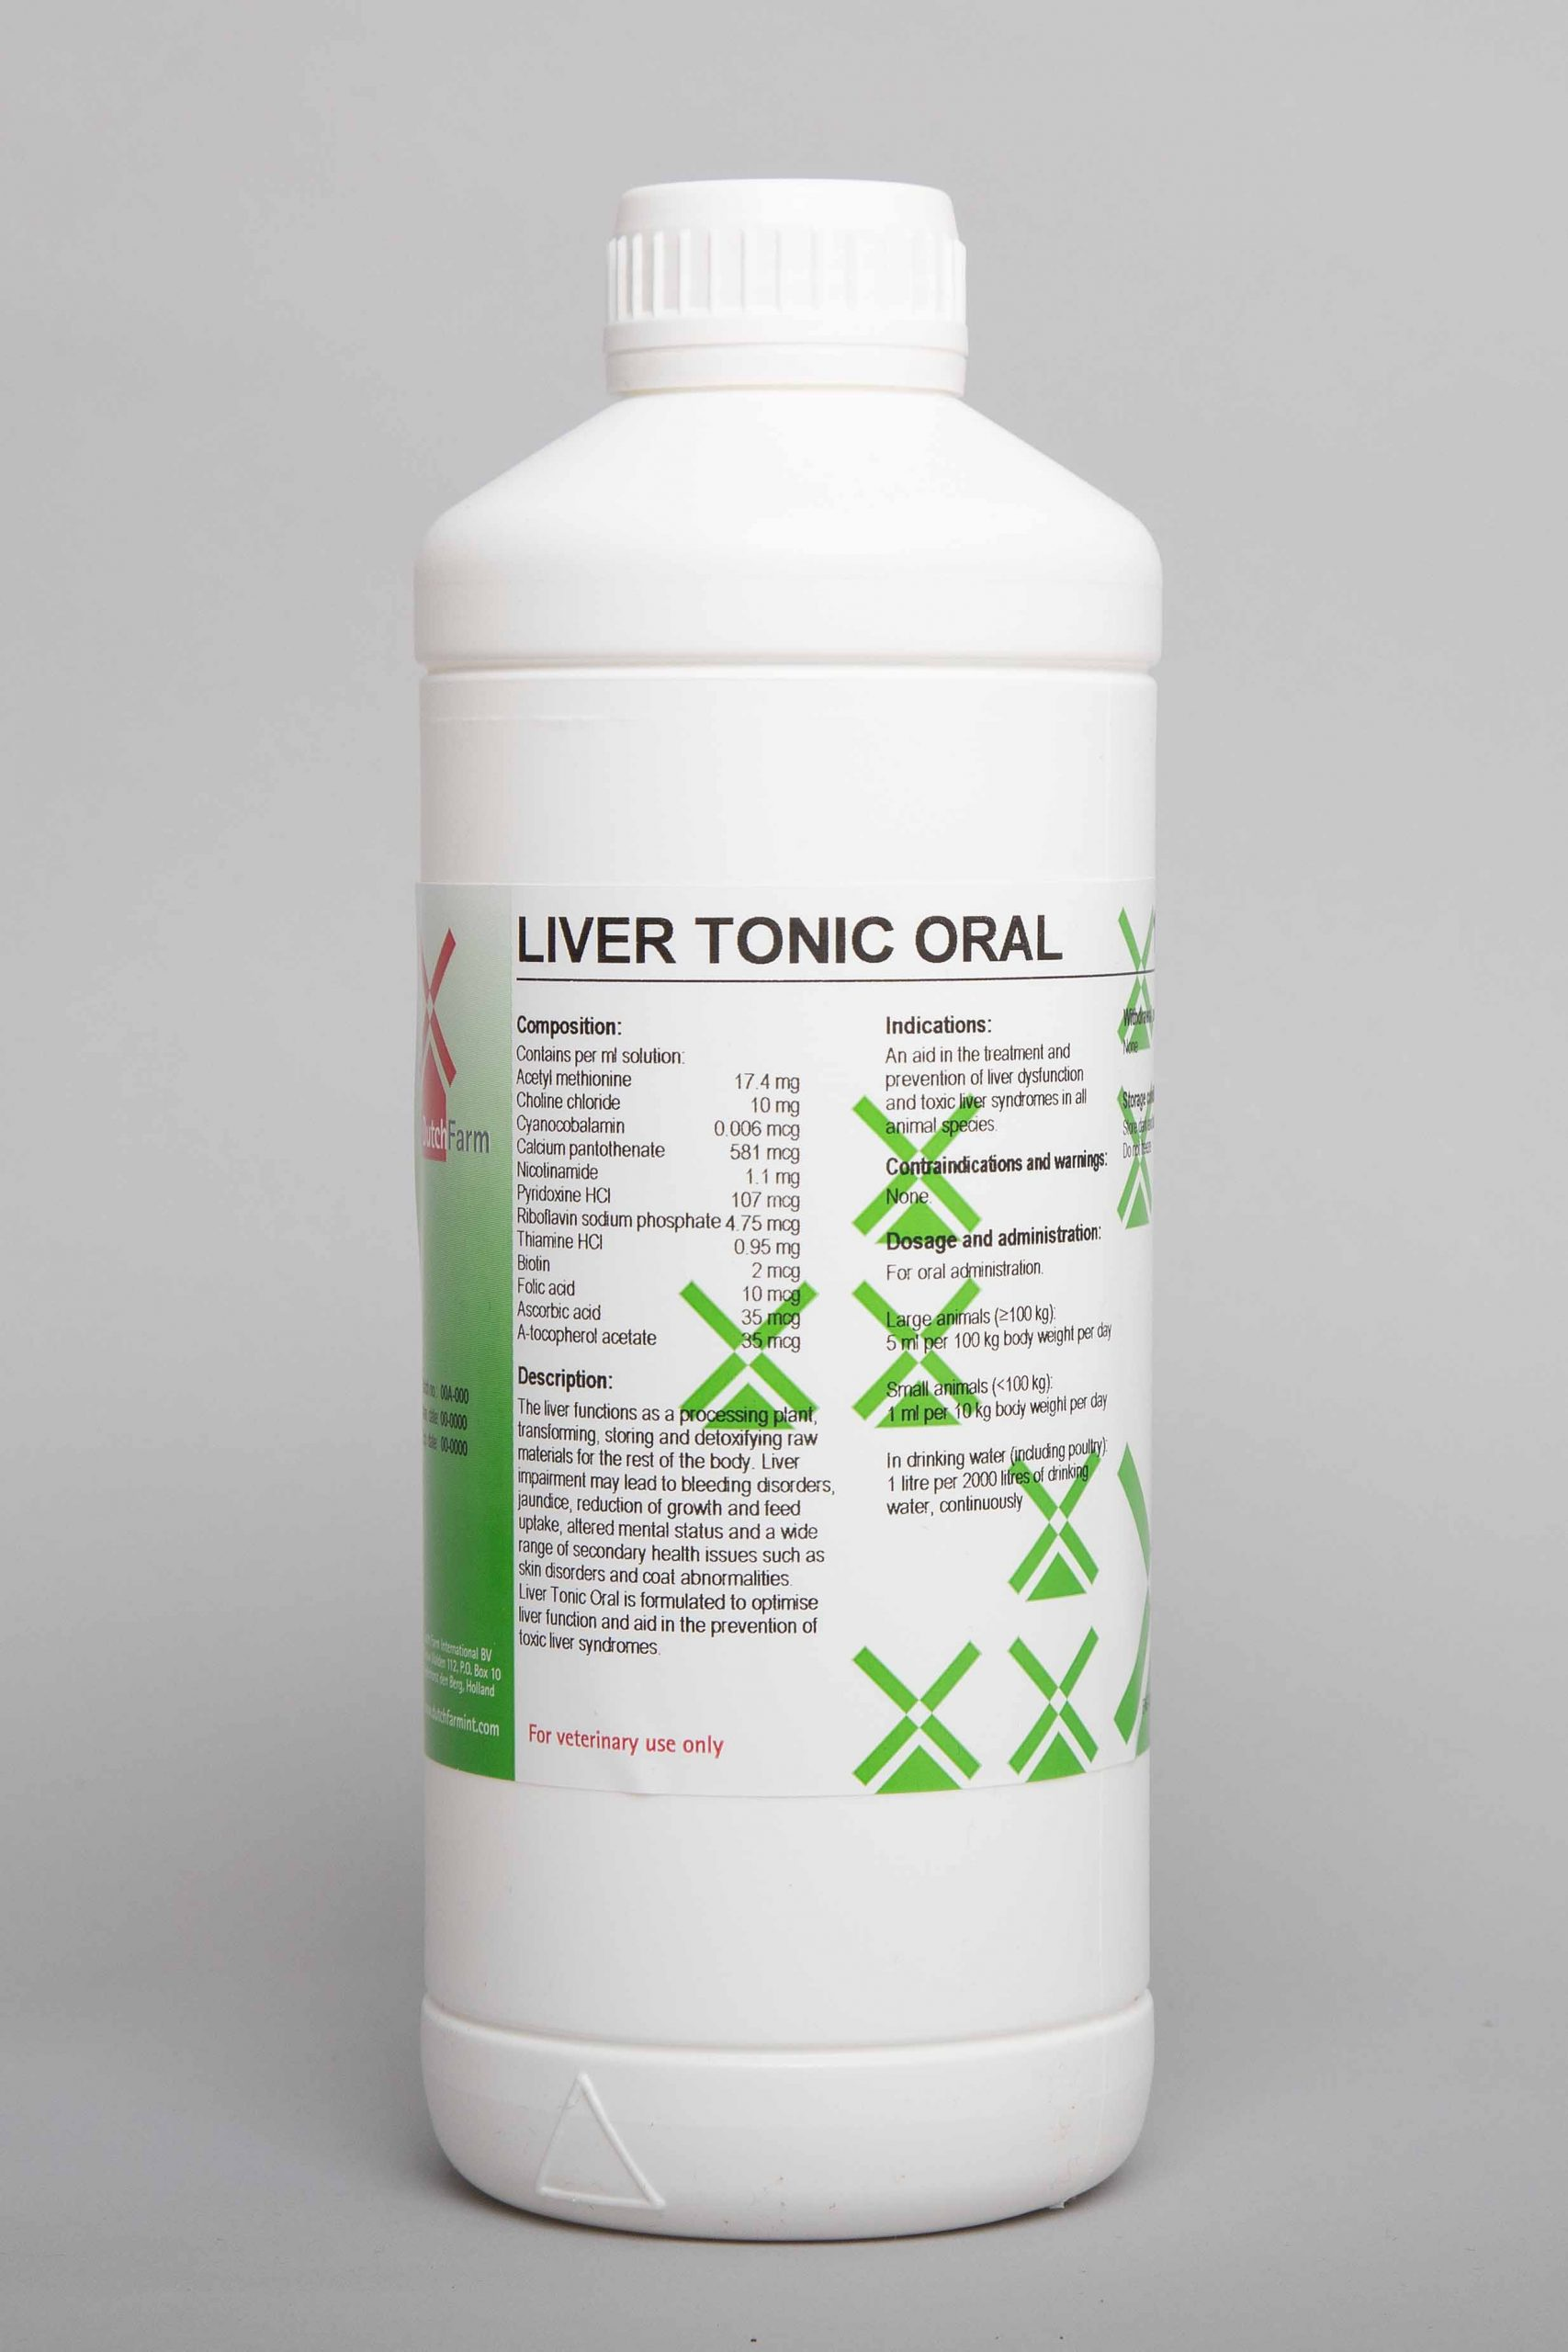 Liver Tonic Oral